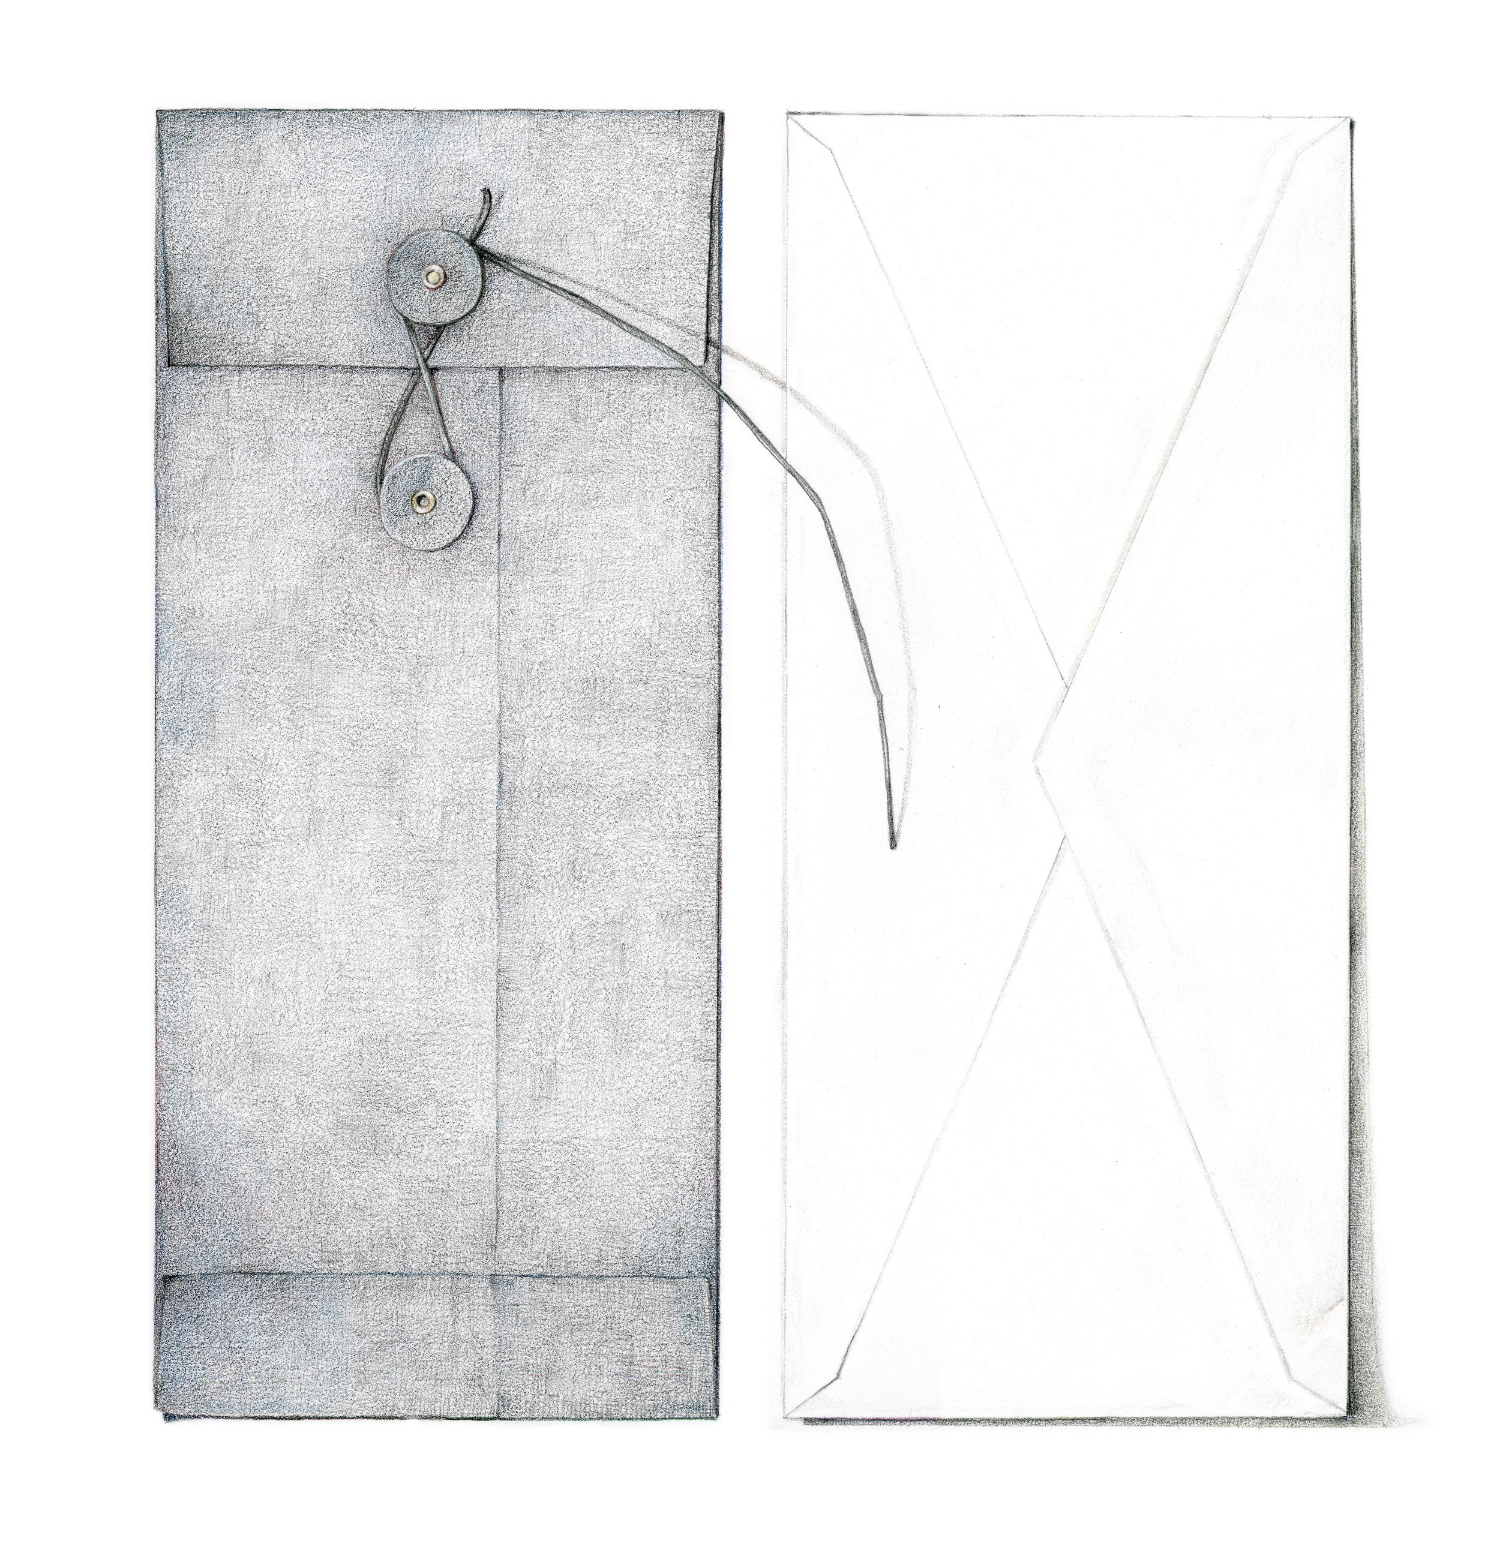 Two envelopes - colored pencil